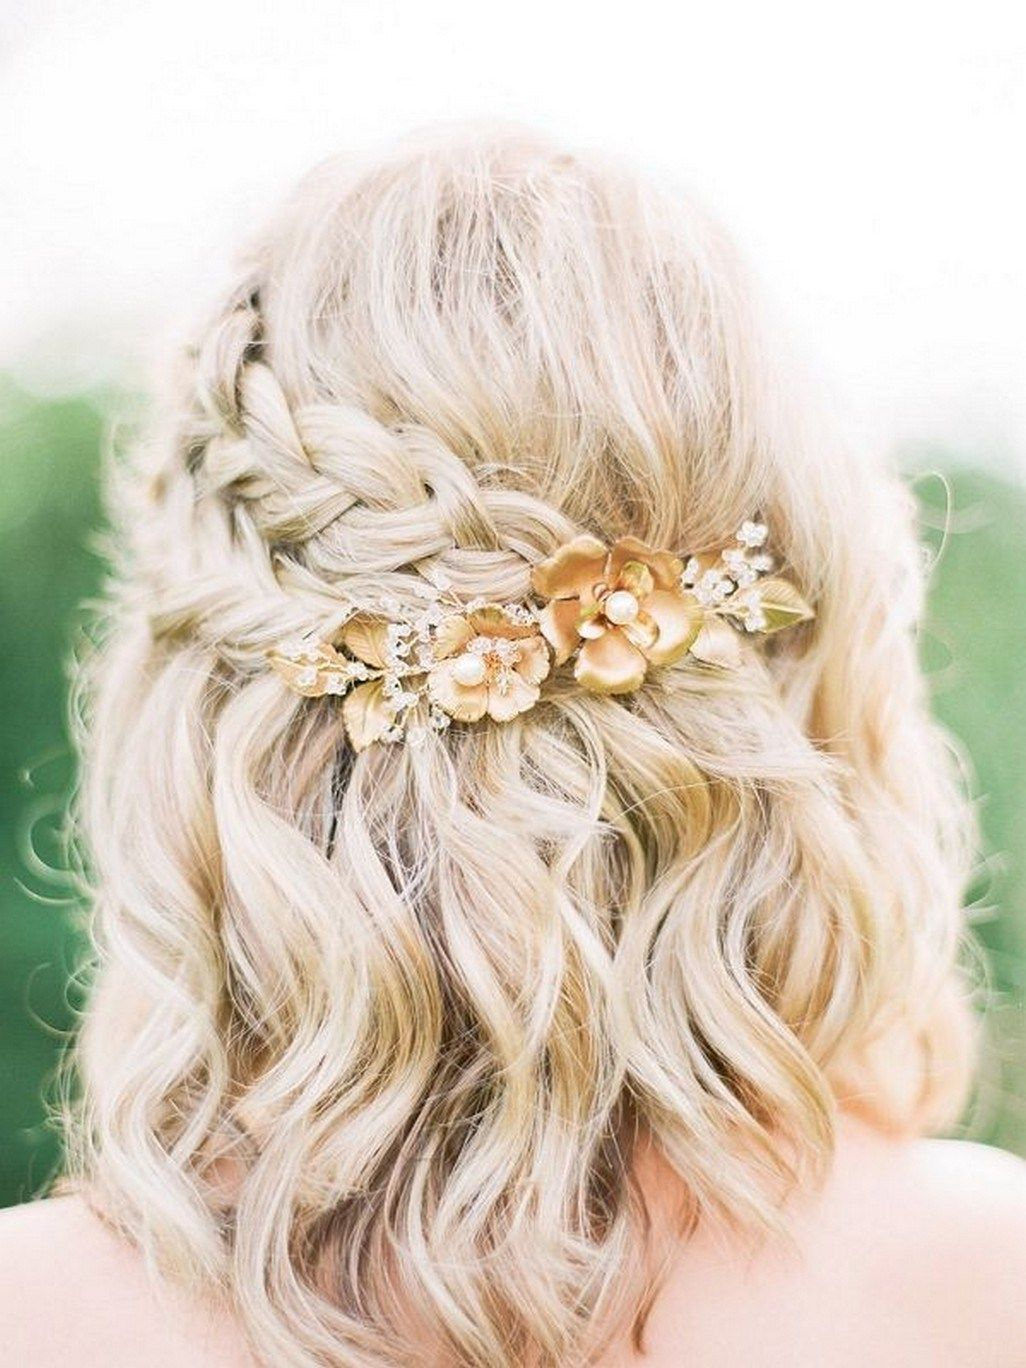 30 Easy and Simply Prom Hairstyle Ideas   Prom hairstyles, Straight ...